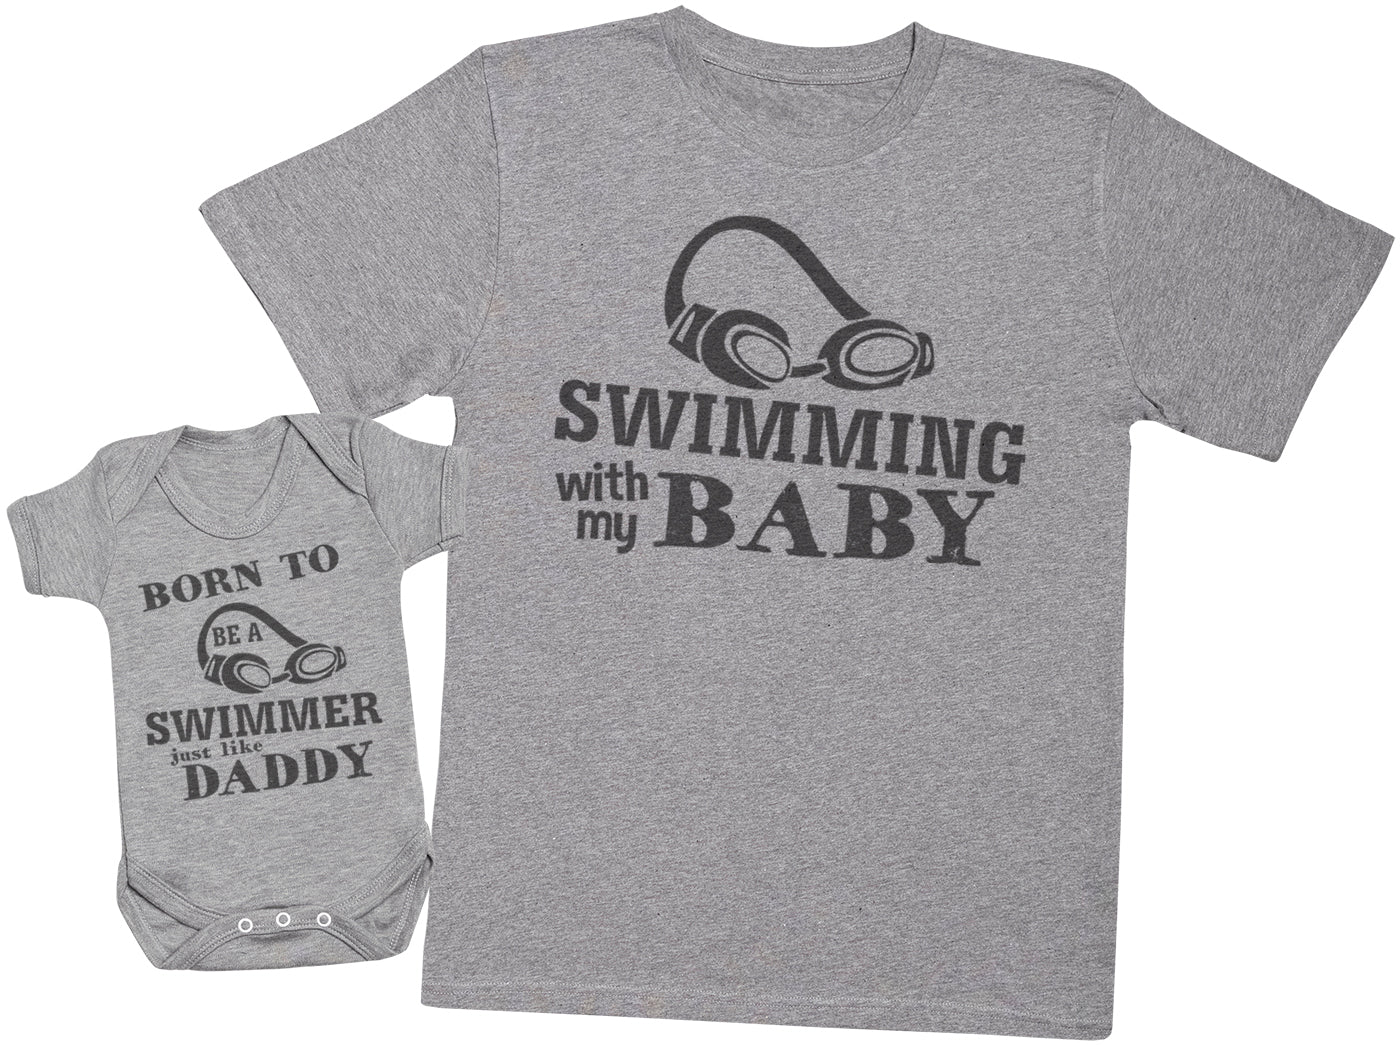 Born To Be A Swimmer Just Like Daddy Matching Father Baby Gift Set - Mens T Shirt & Baby Bodysuit